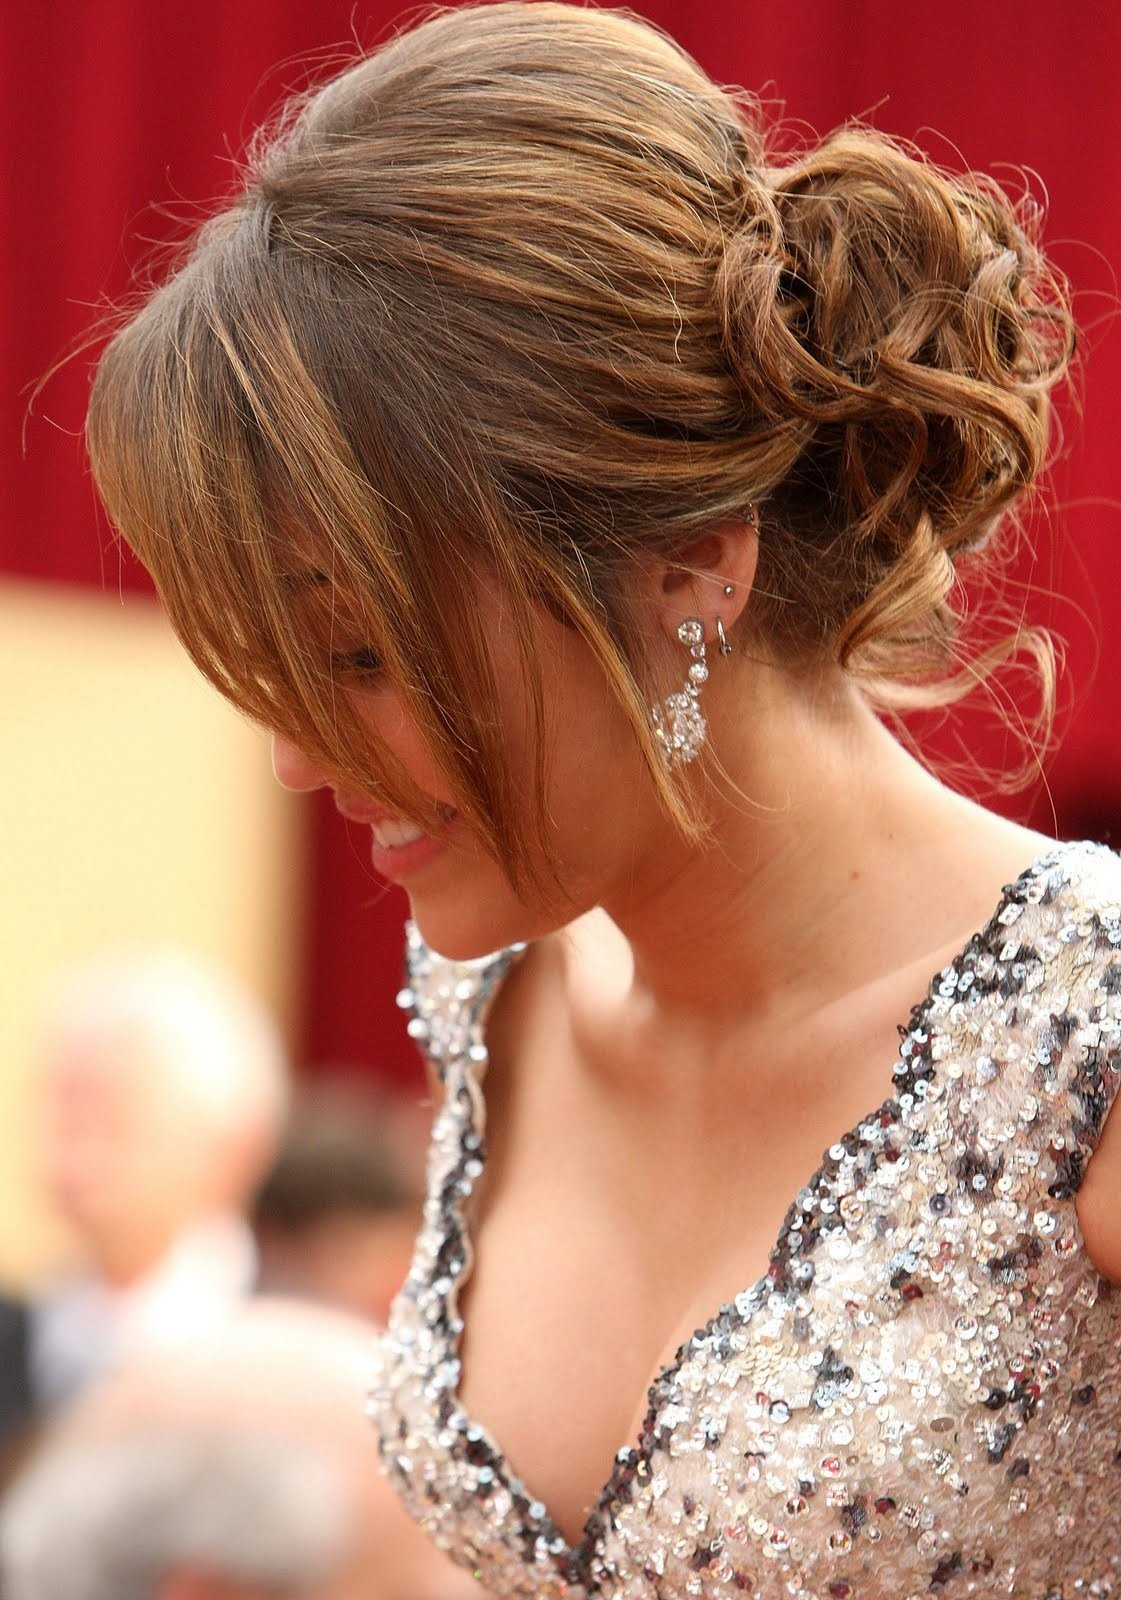 The Best 15 Cute Hairstyles For Prom 2014 Pictures